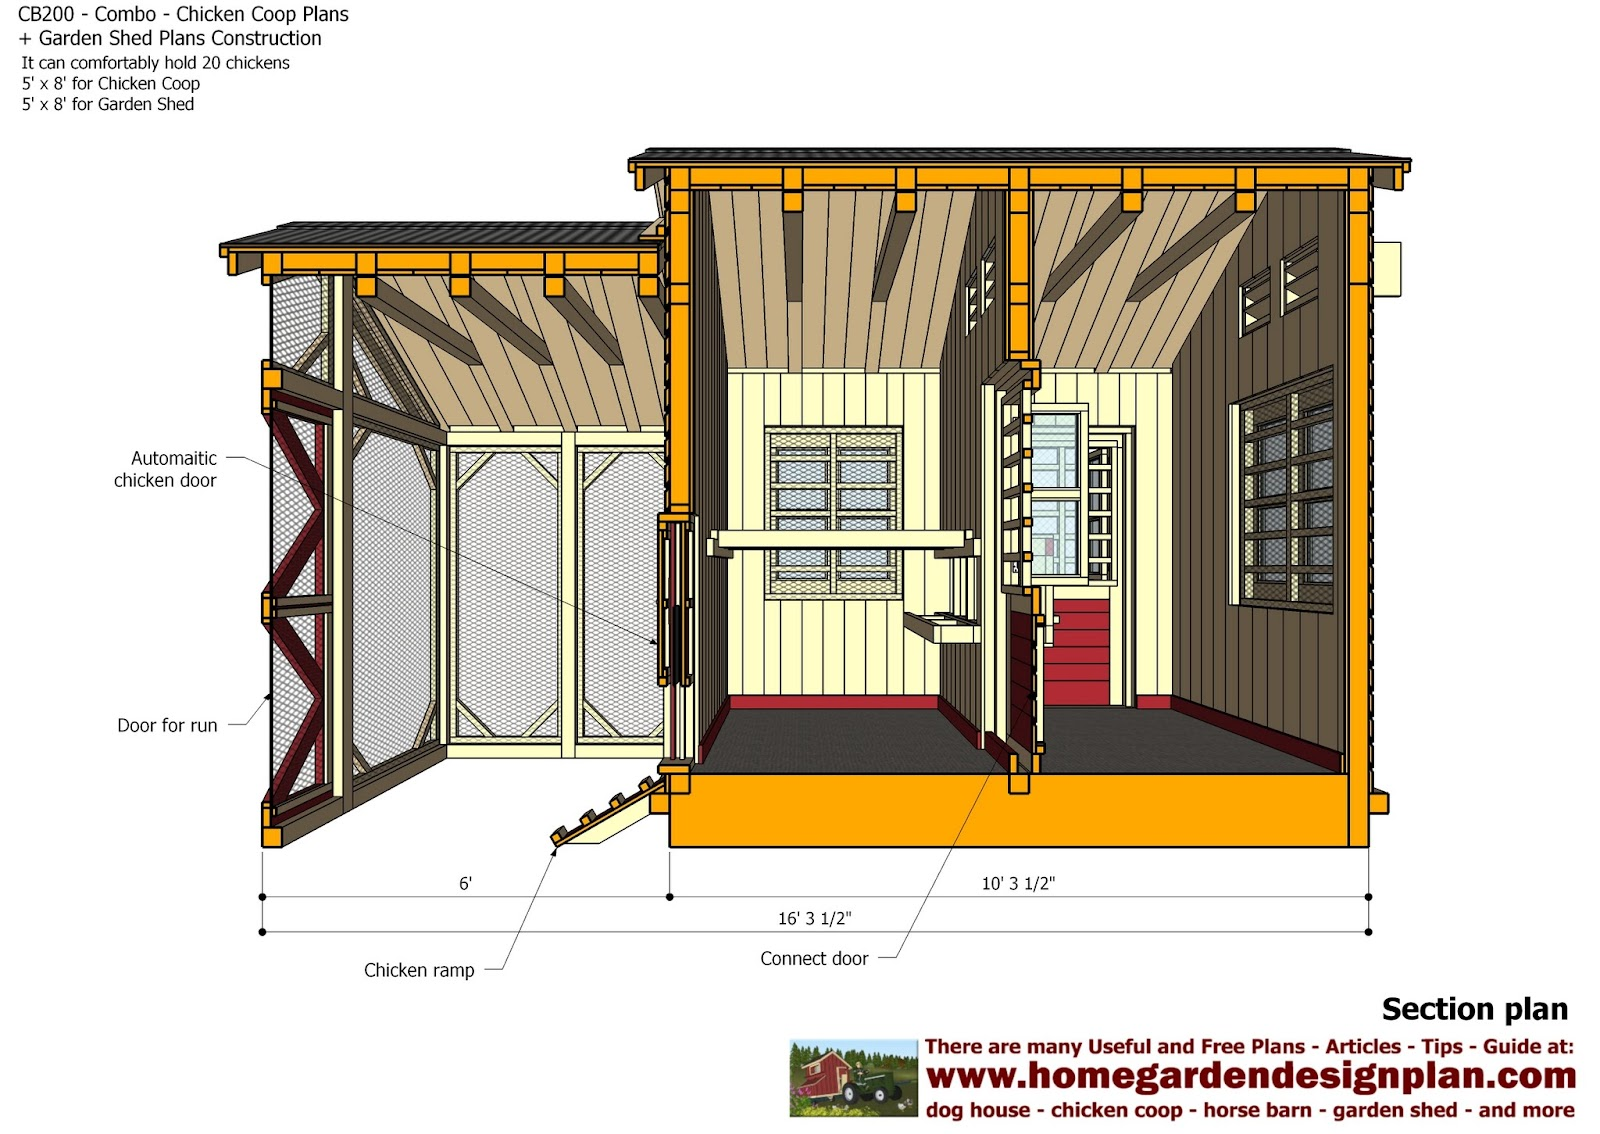 Home garden plans cb200 combo plans chicken coop for Building planner